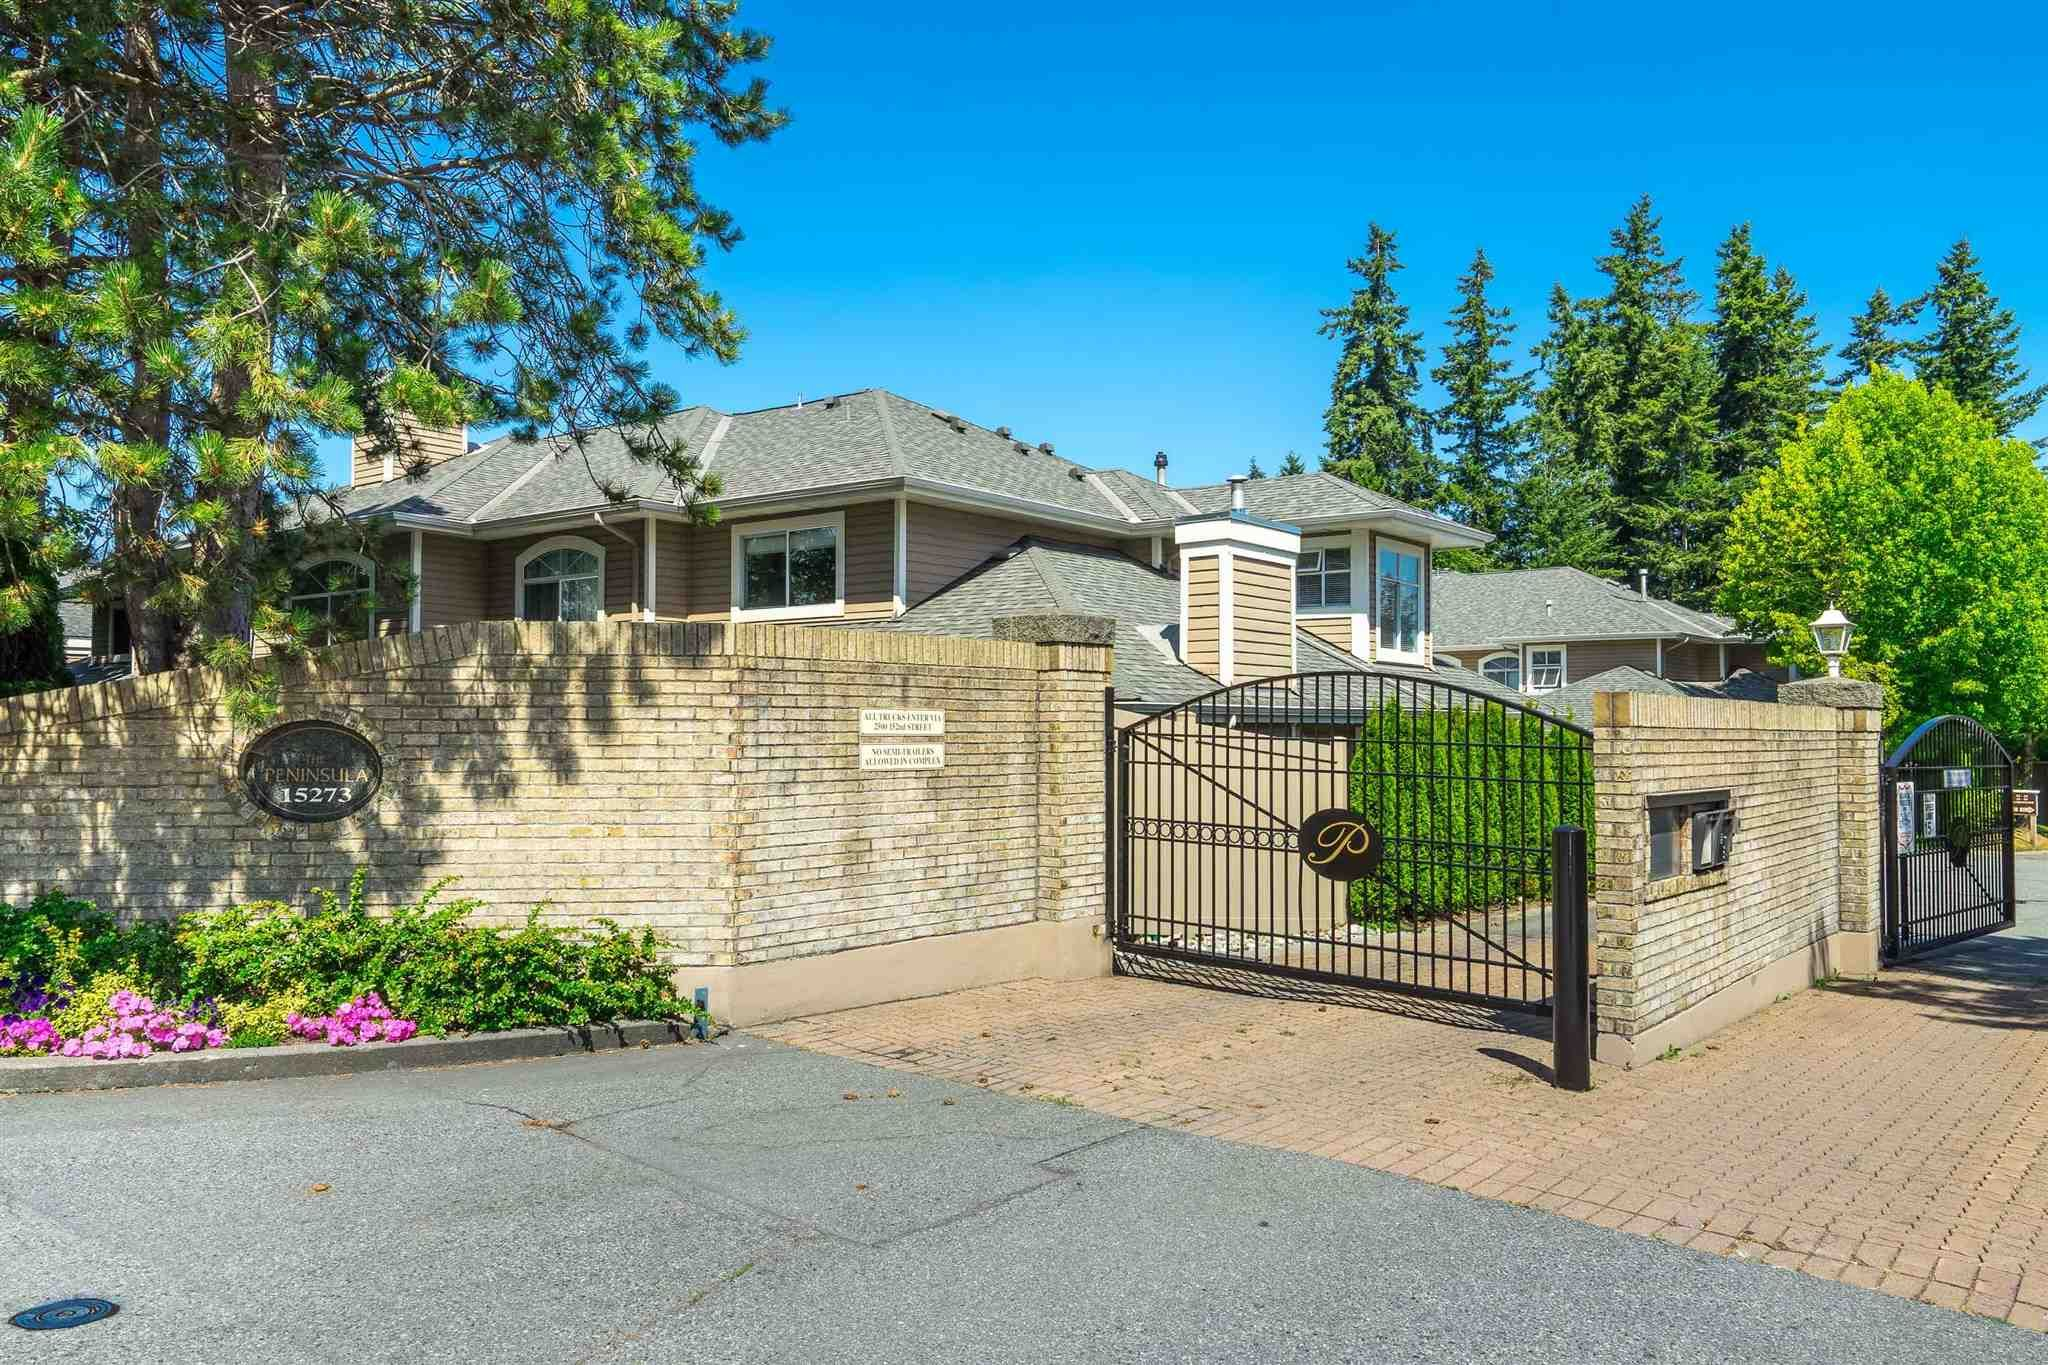 Main Photo: 38 15273 24 AVENUE in Surrey: King George Corridor Townhouse for sale (South Surrey White Rock)  : MLS®# R2604630